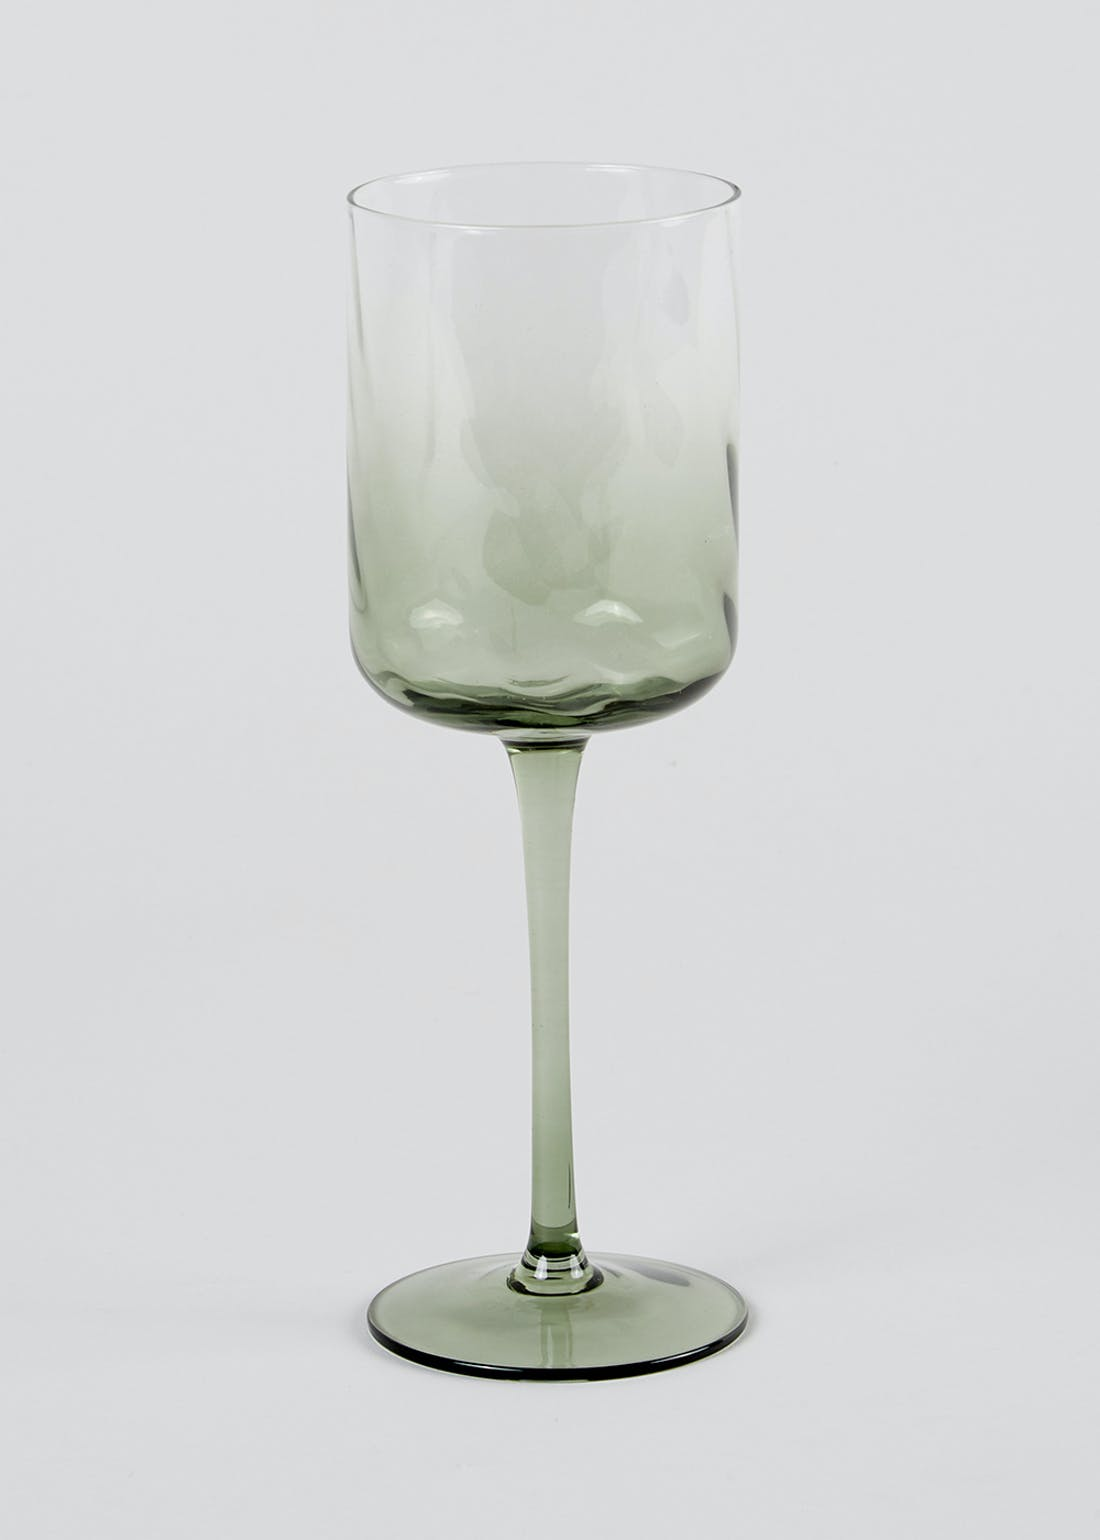 Ombre Hammered Wine Glass (23cm x 8cm)